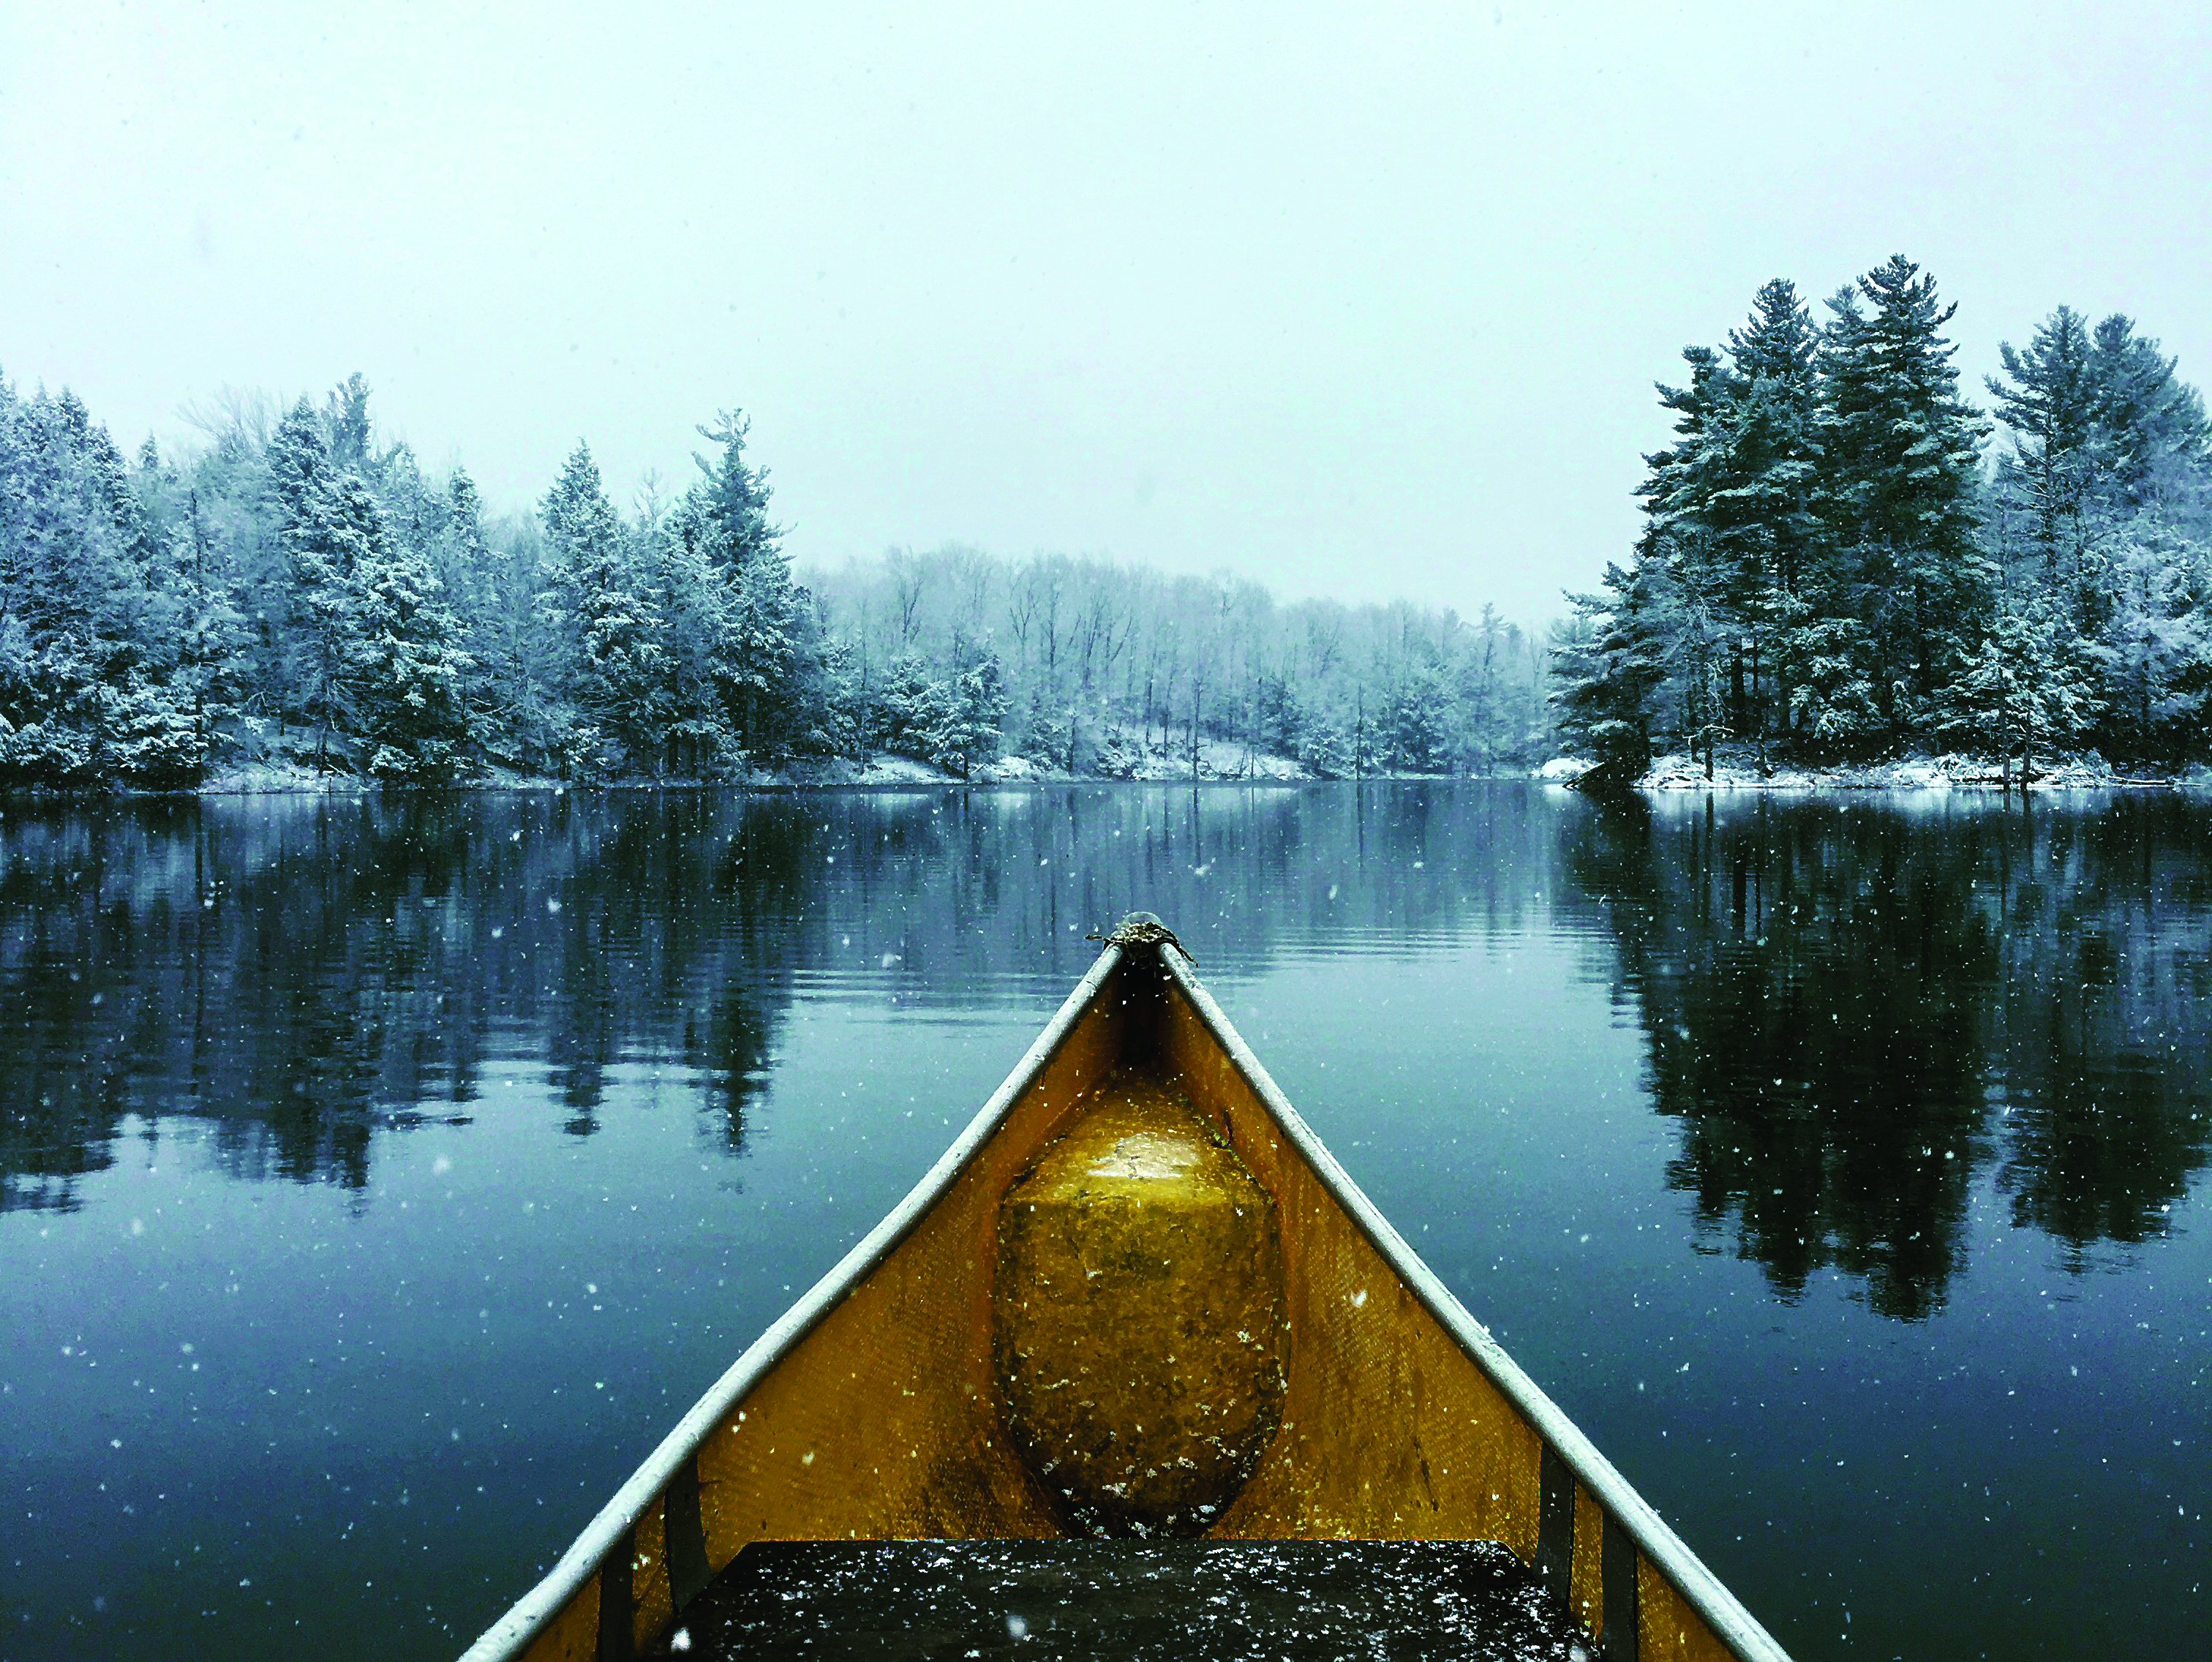 Snowy Paddle by Fred Nentwick